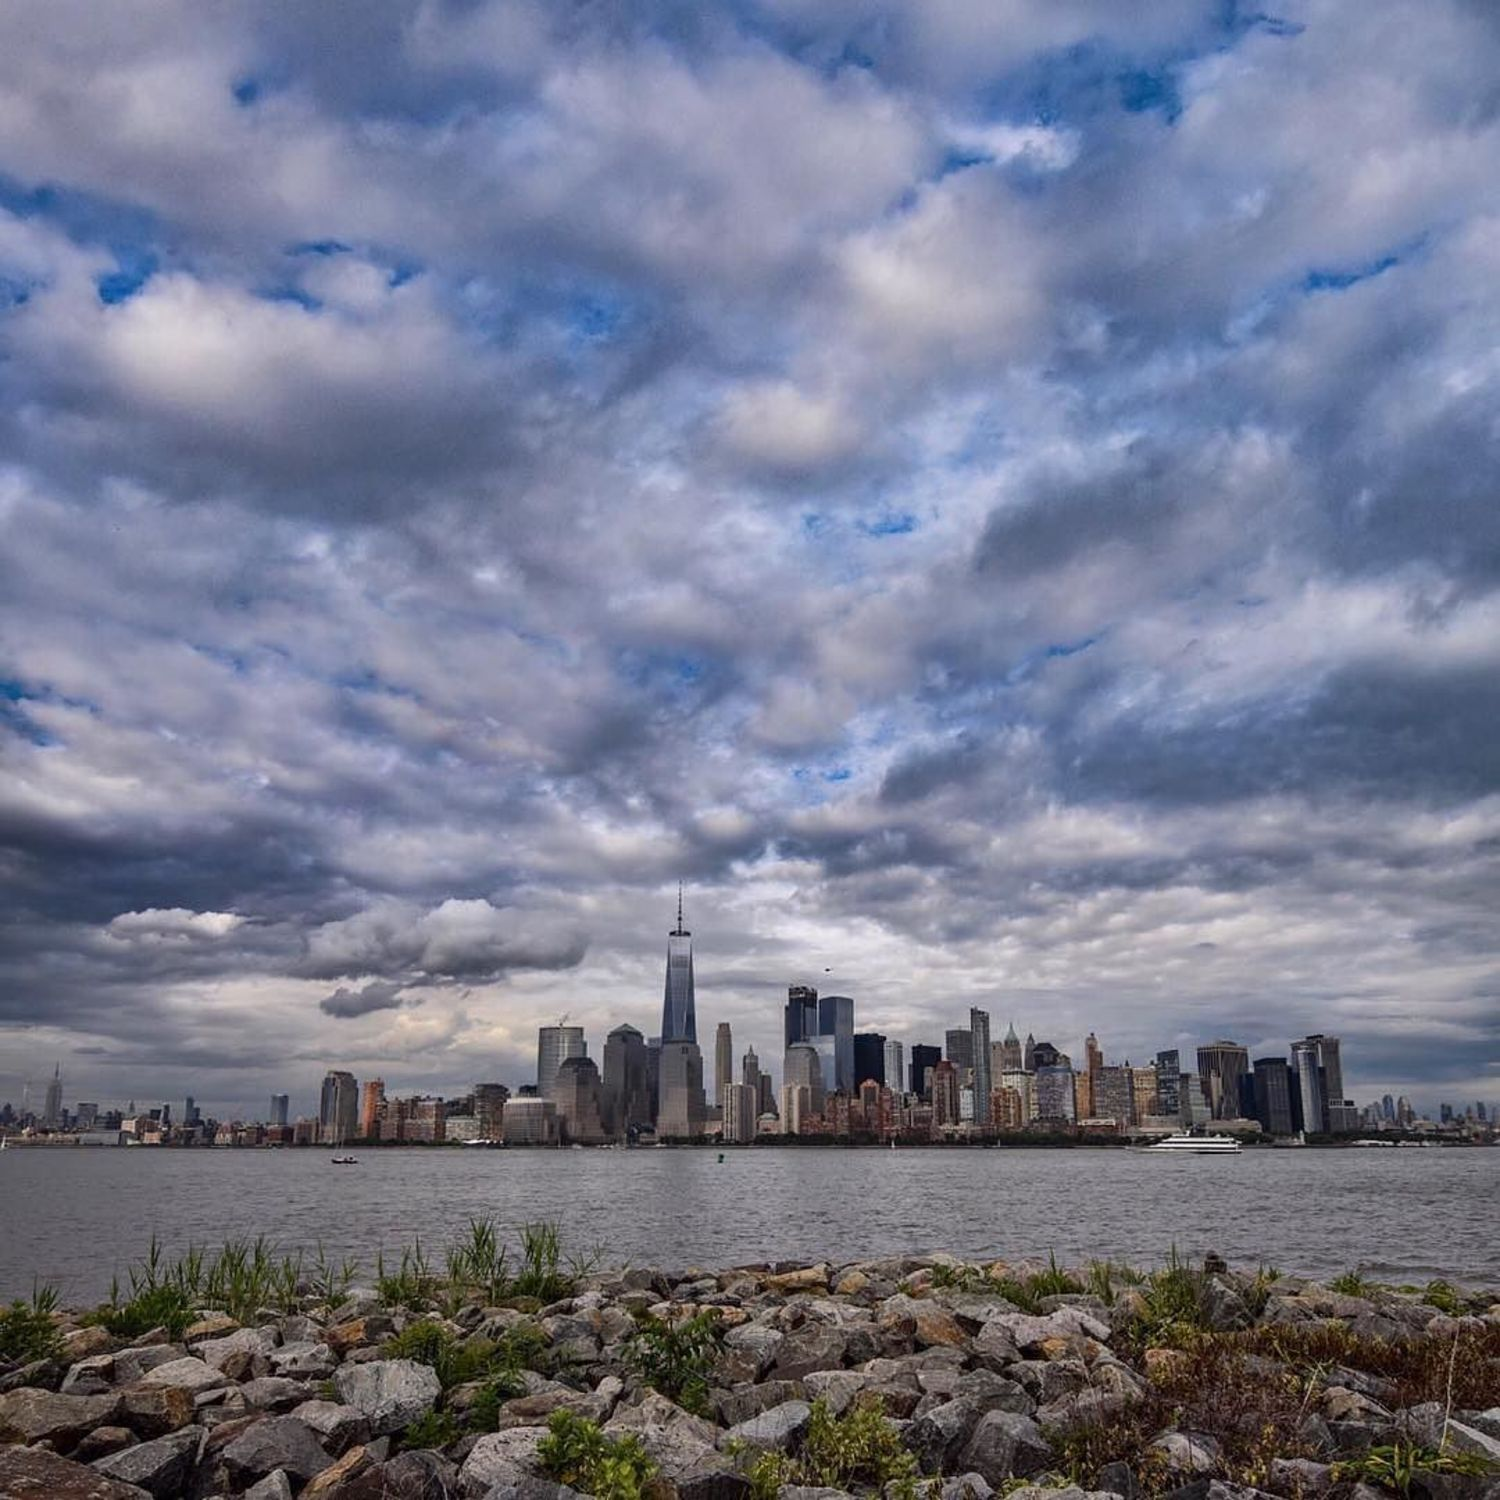 New York, New York. Photo via @nycfotophun #viewingnyc